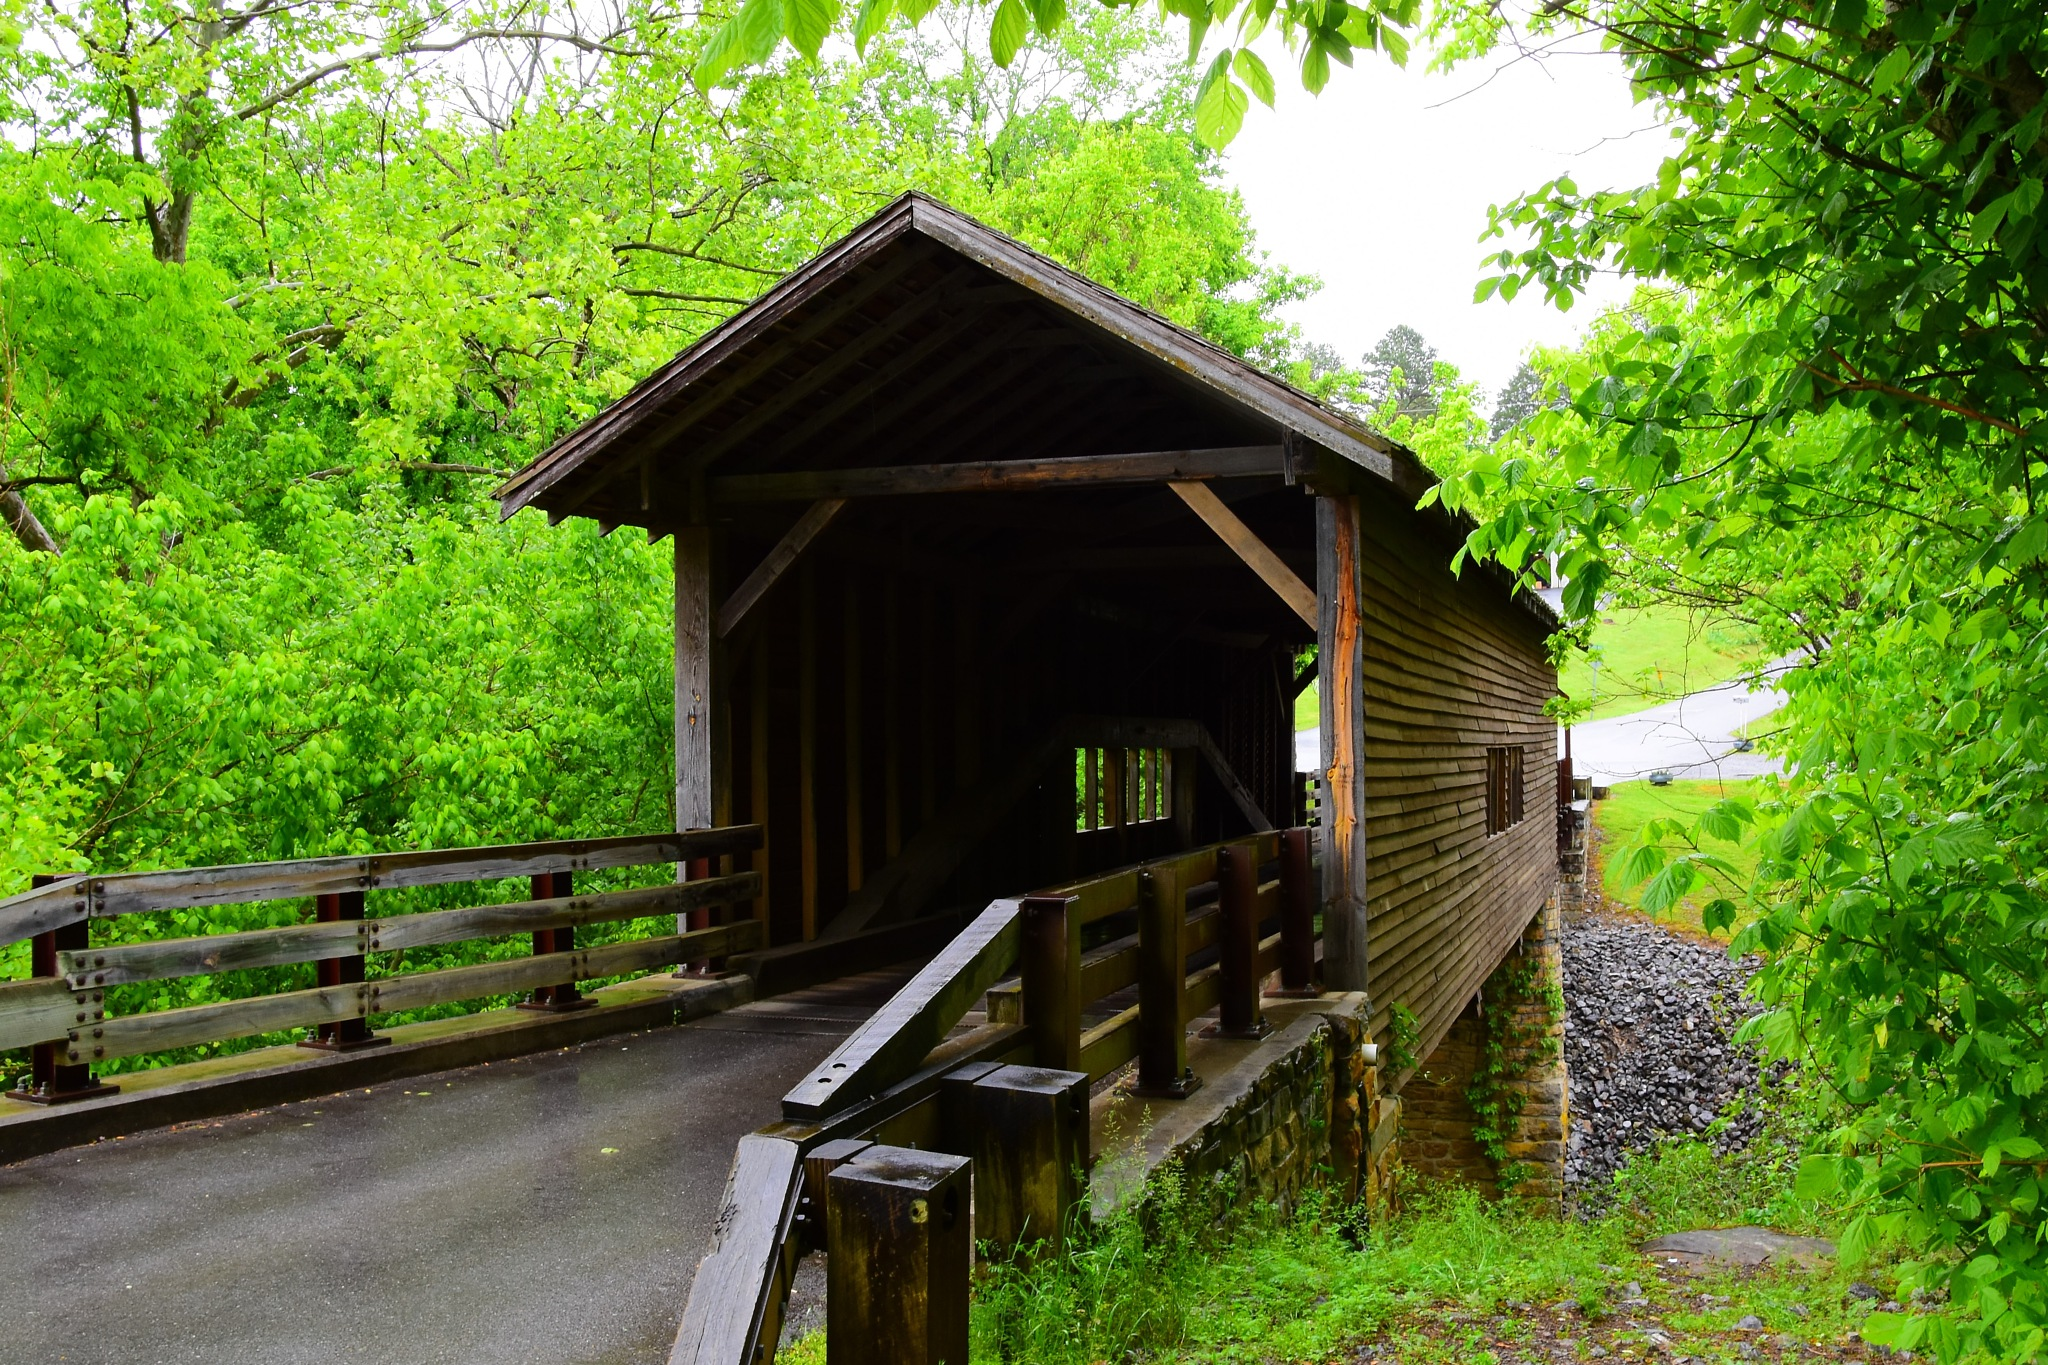 Harrisburg Covered Bridge 2 by Greg Knott